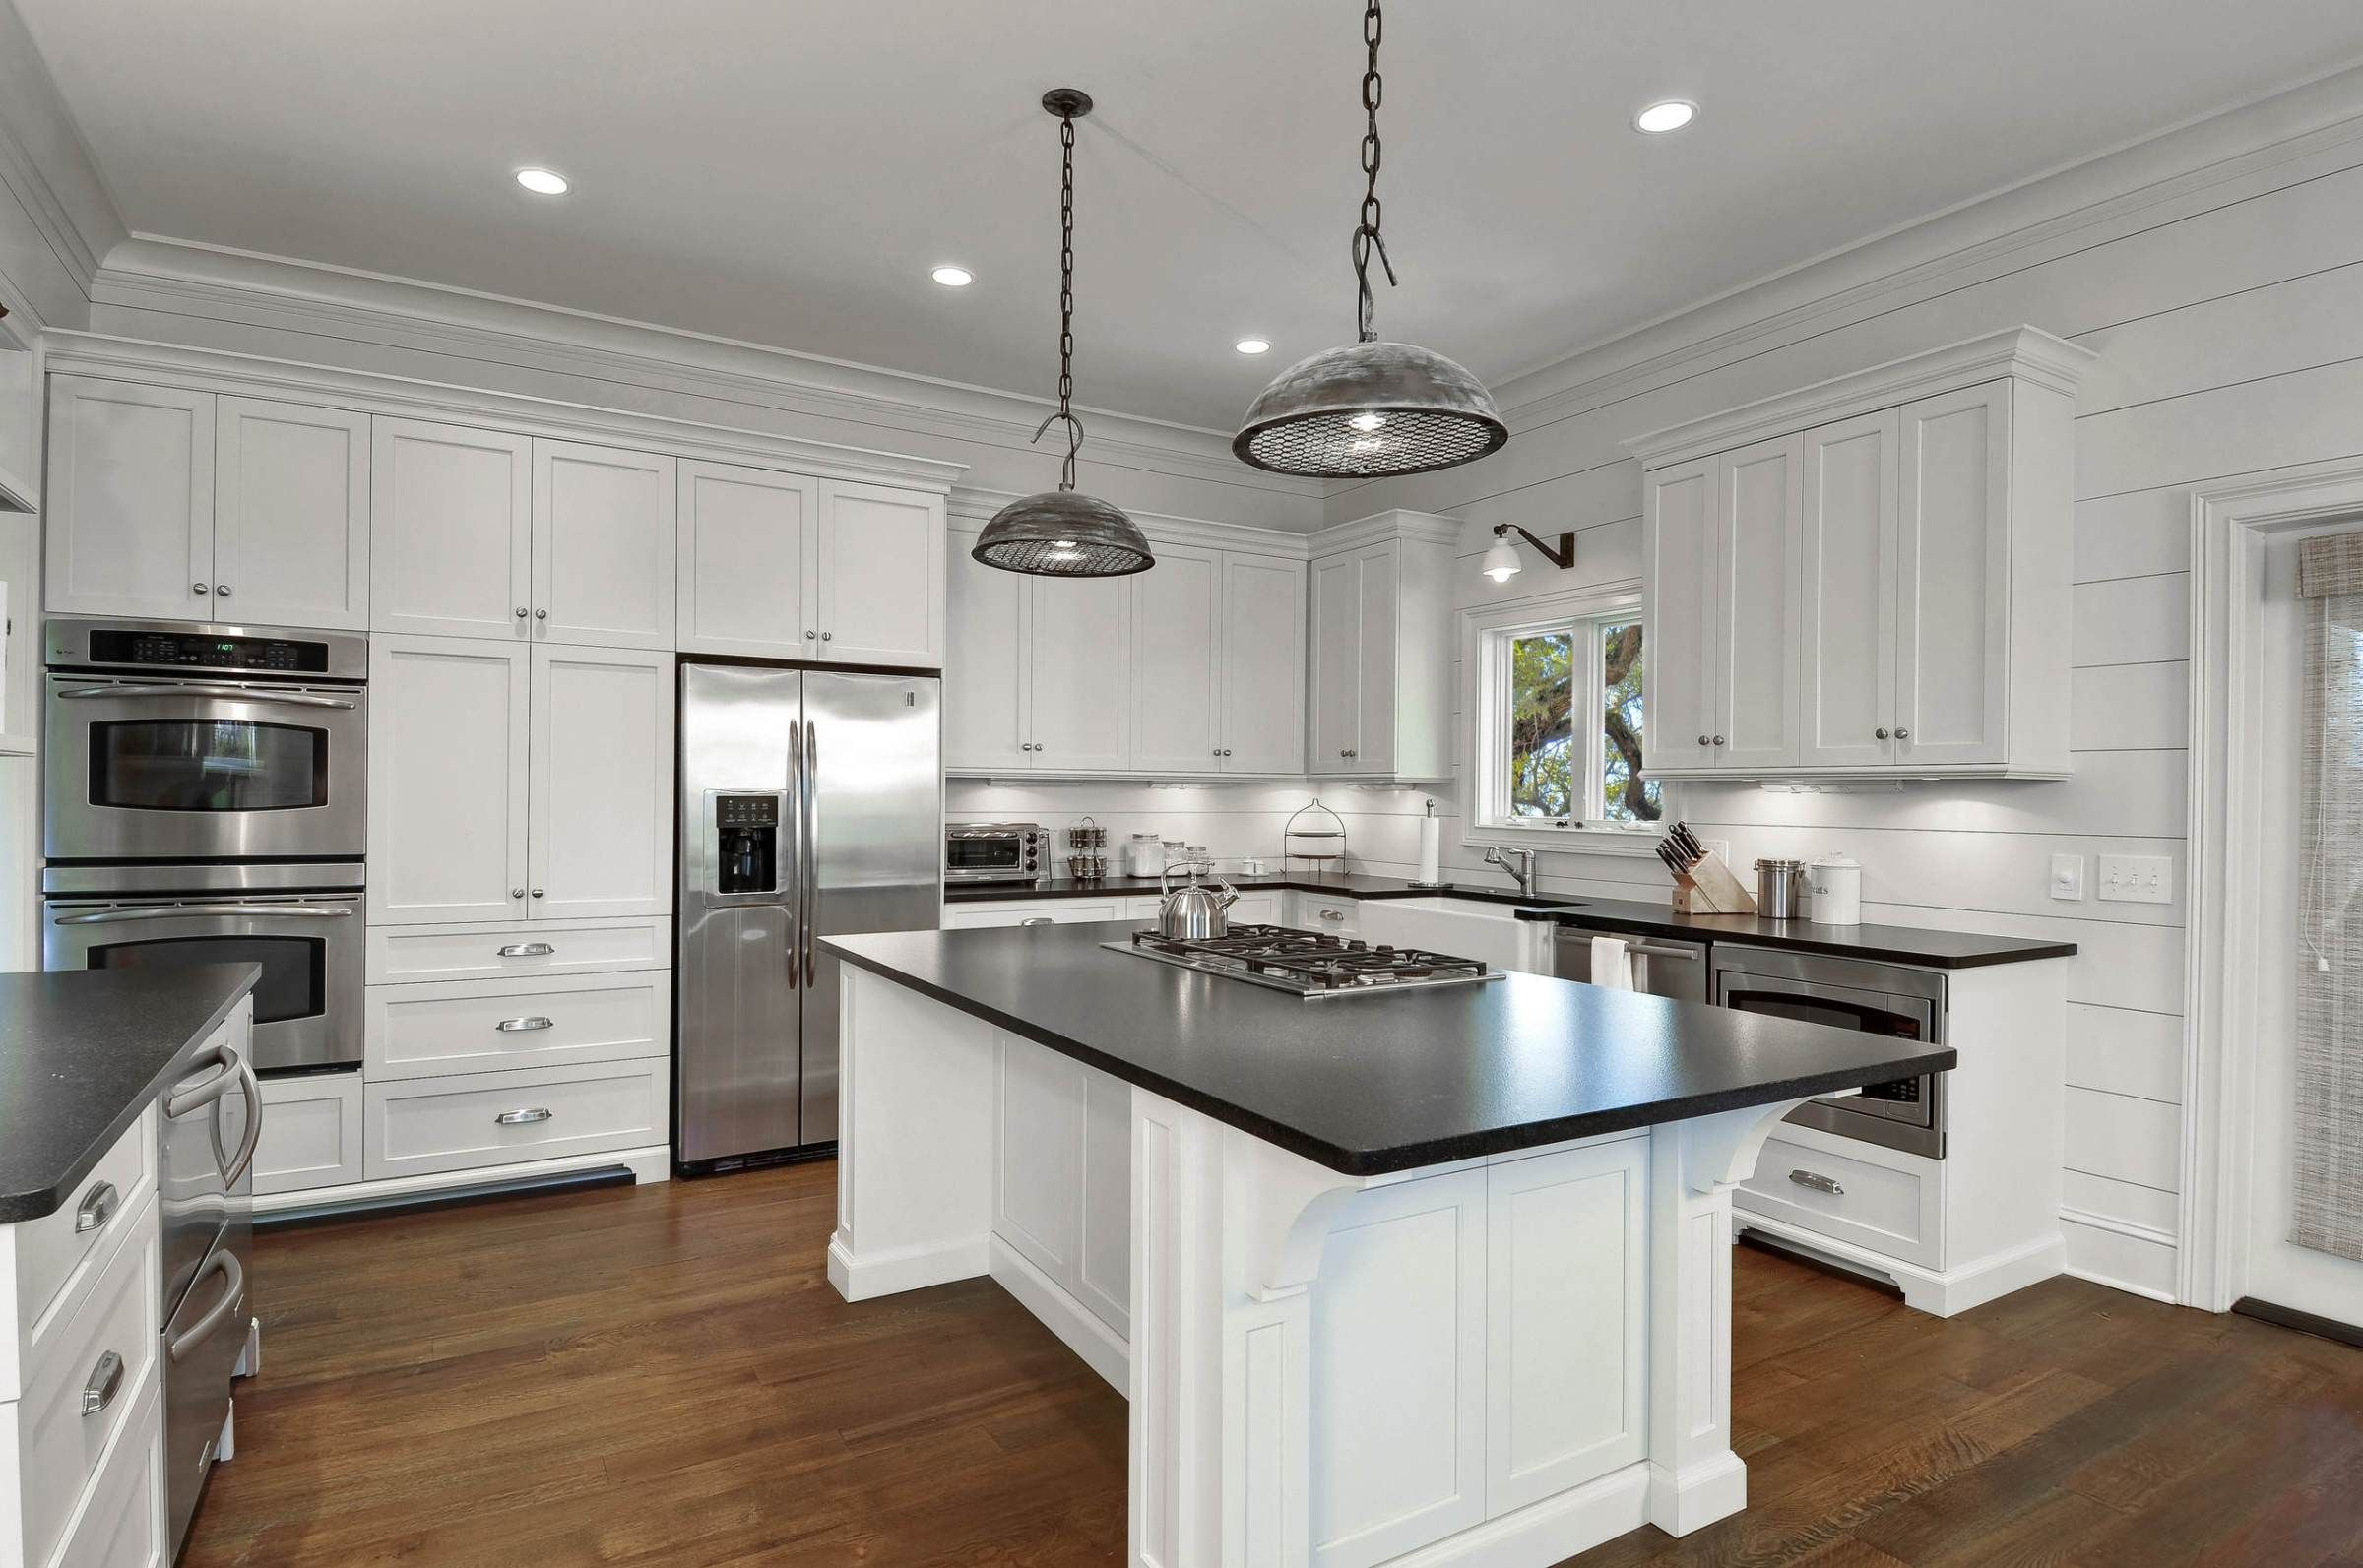 How To Get The Farmhouse Style Kitchen Look in 2020 (With